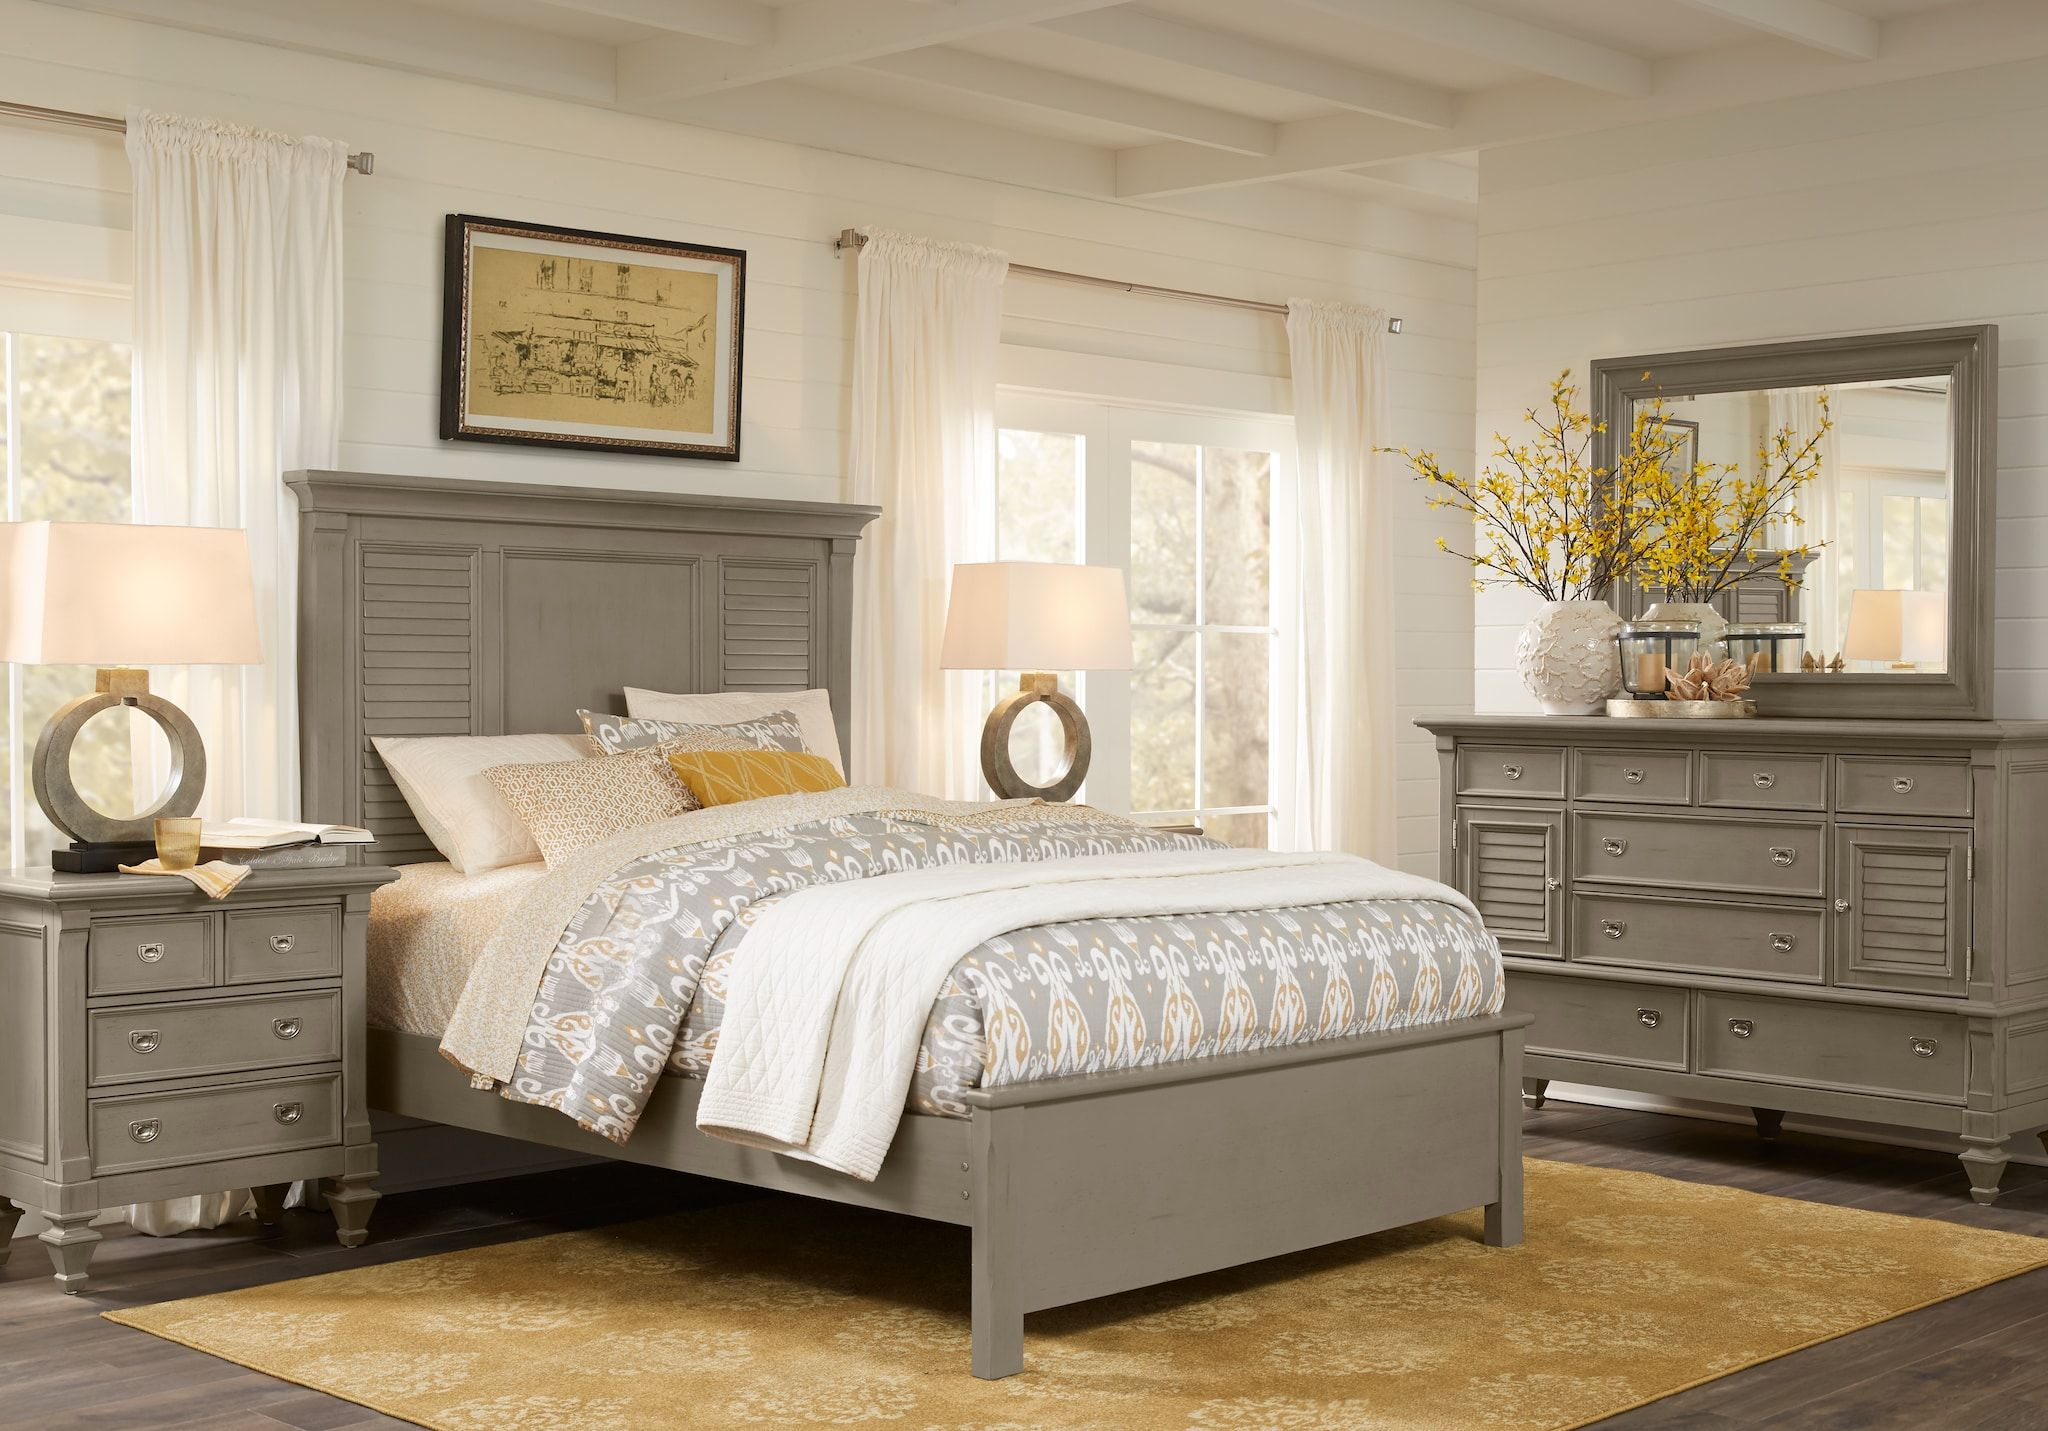 Affordable Queen Bedroom Sets For Sale 5 6 Piece Suites